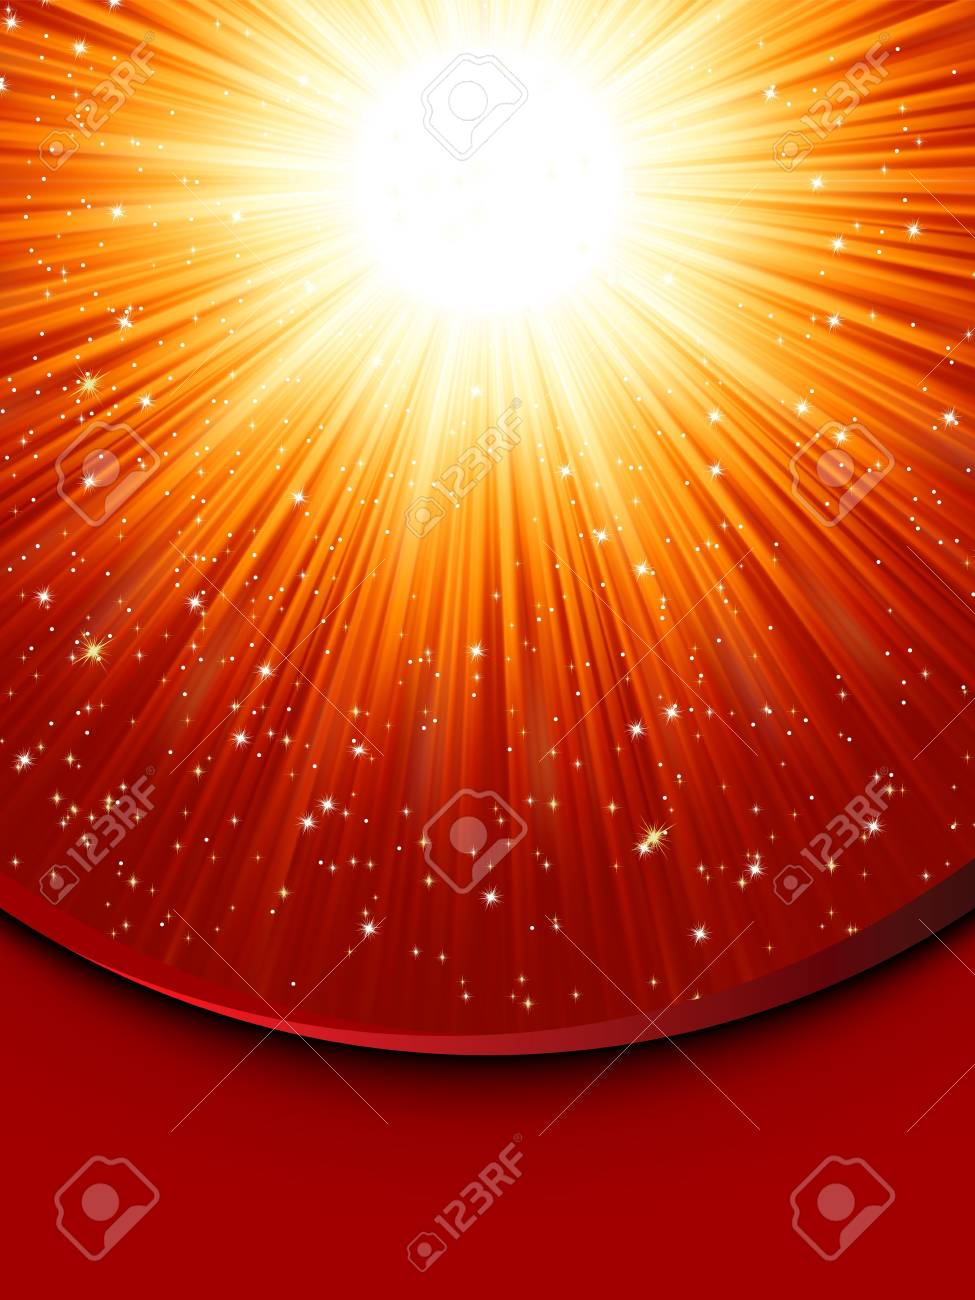 Snowflakes and stars descending on a path of golden light Stock Vector - 15691389